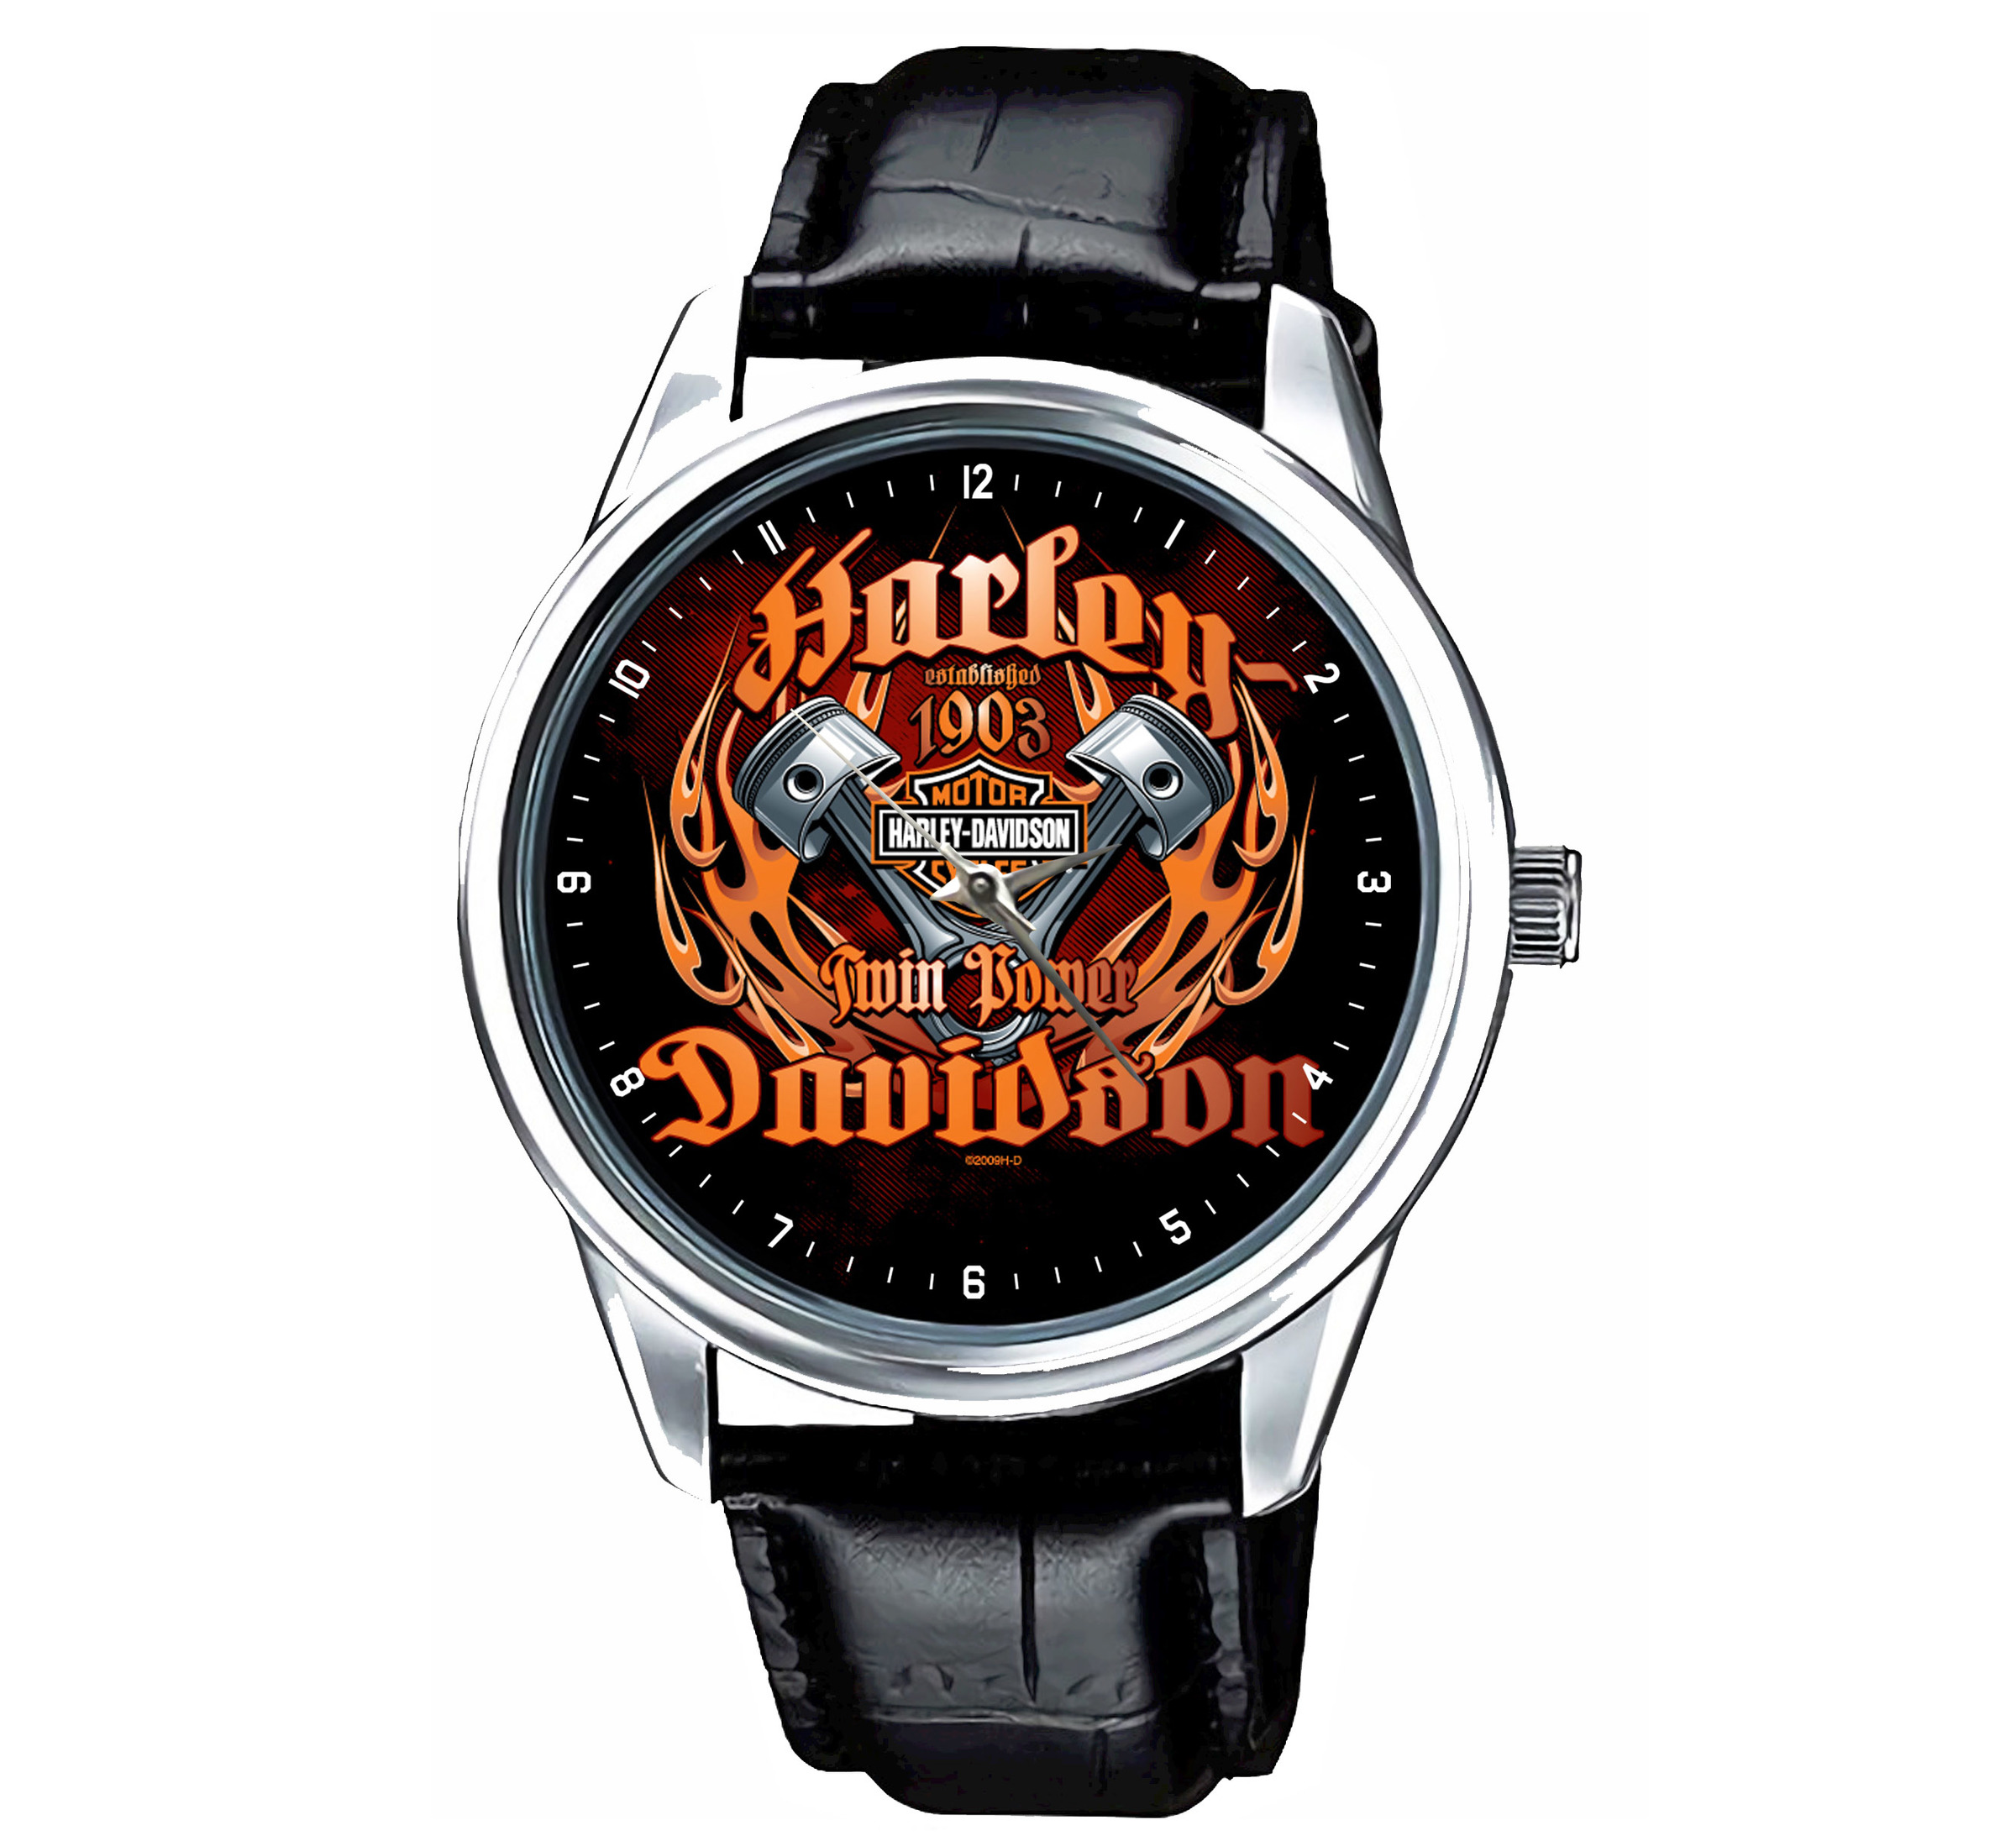 066-HOT Reloj Harley Davidson Motorcycles Legend.jpg